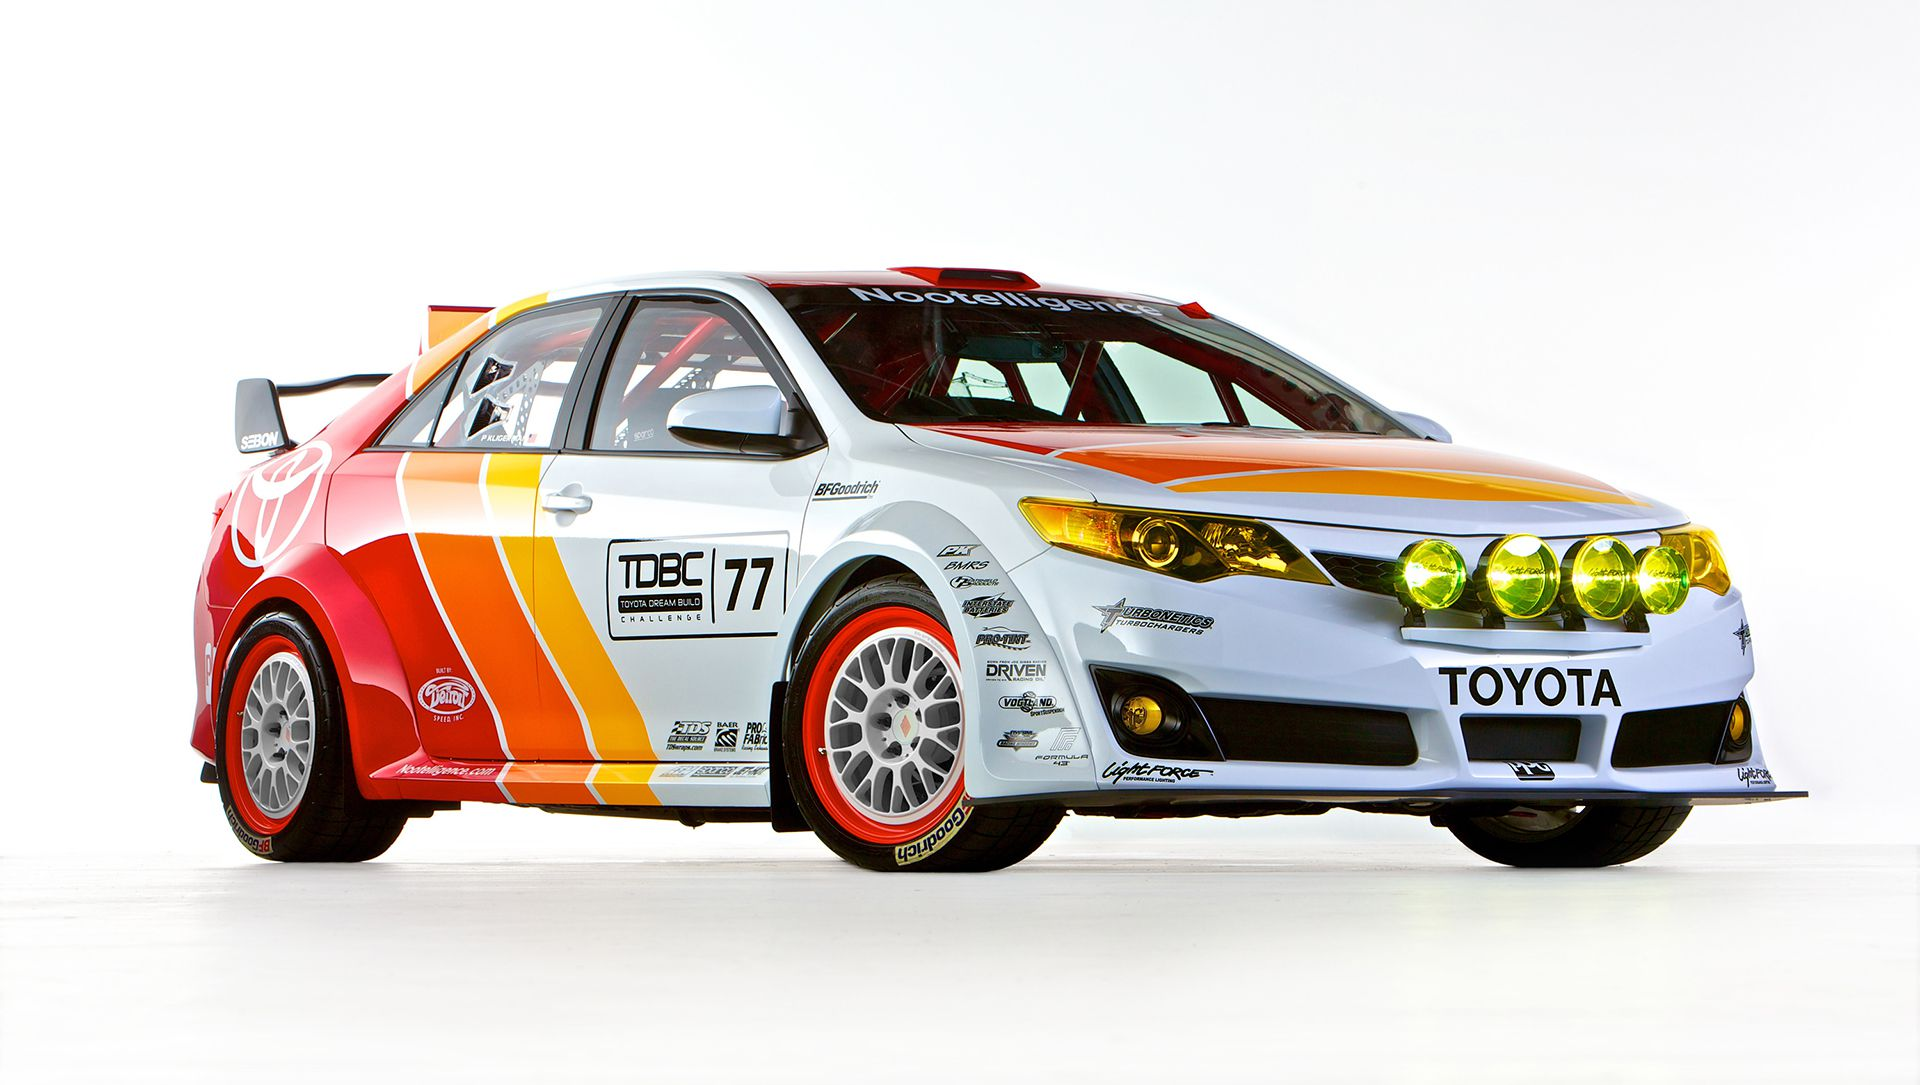 2013 Sema Auto Show Preview Toyota Beauty And Brawn In Rally Style